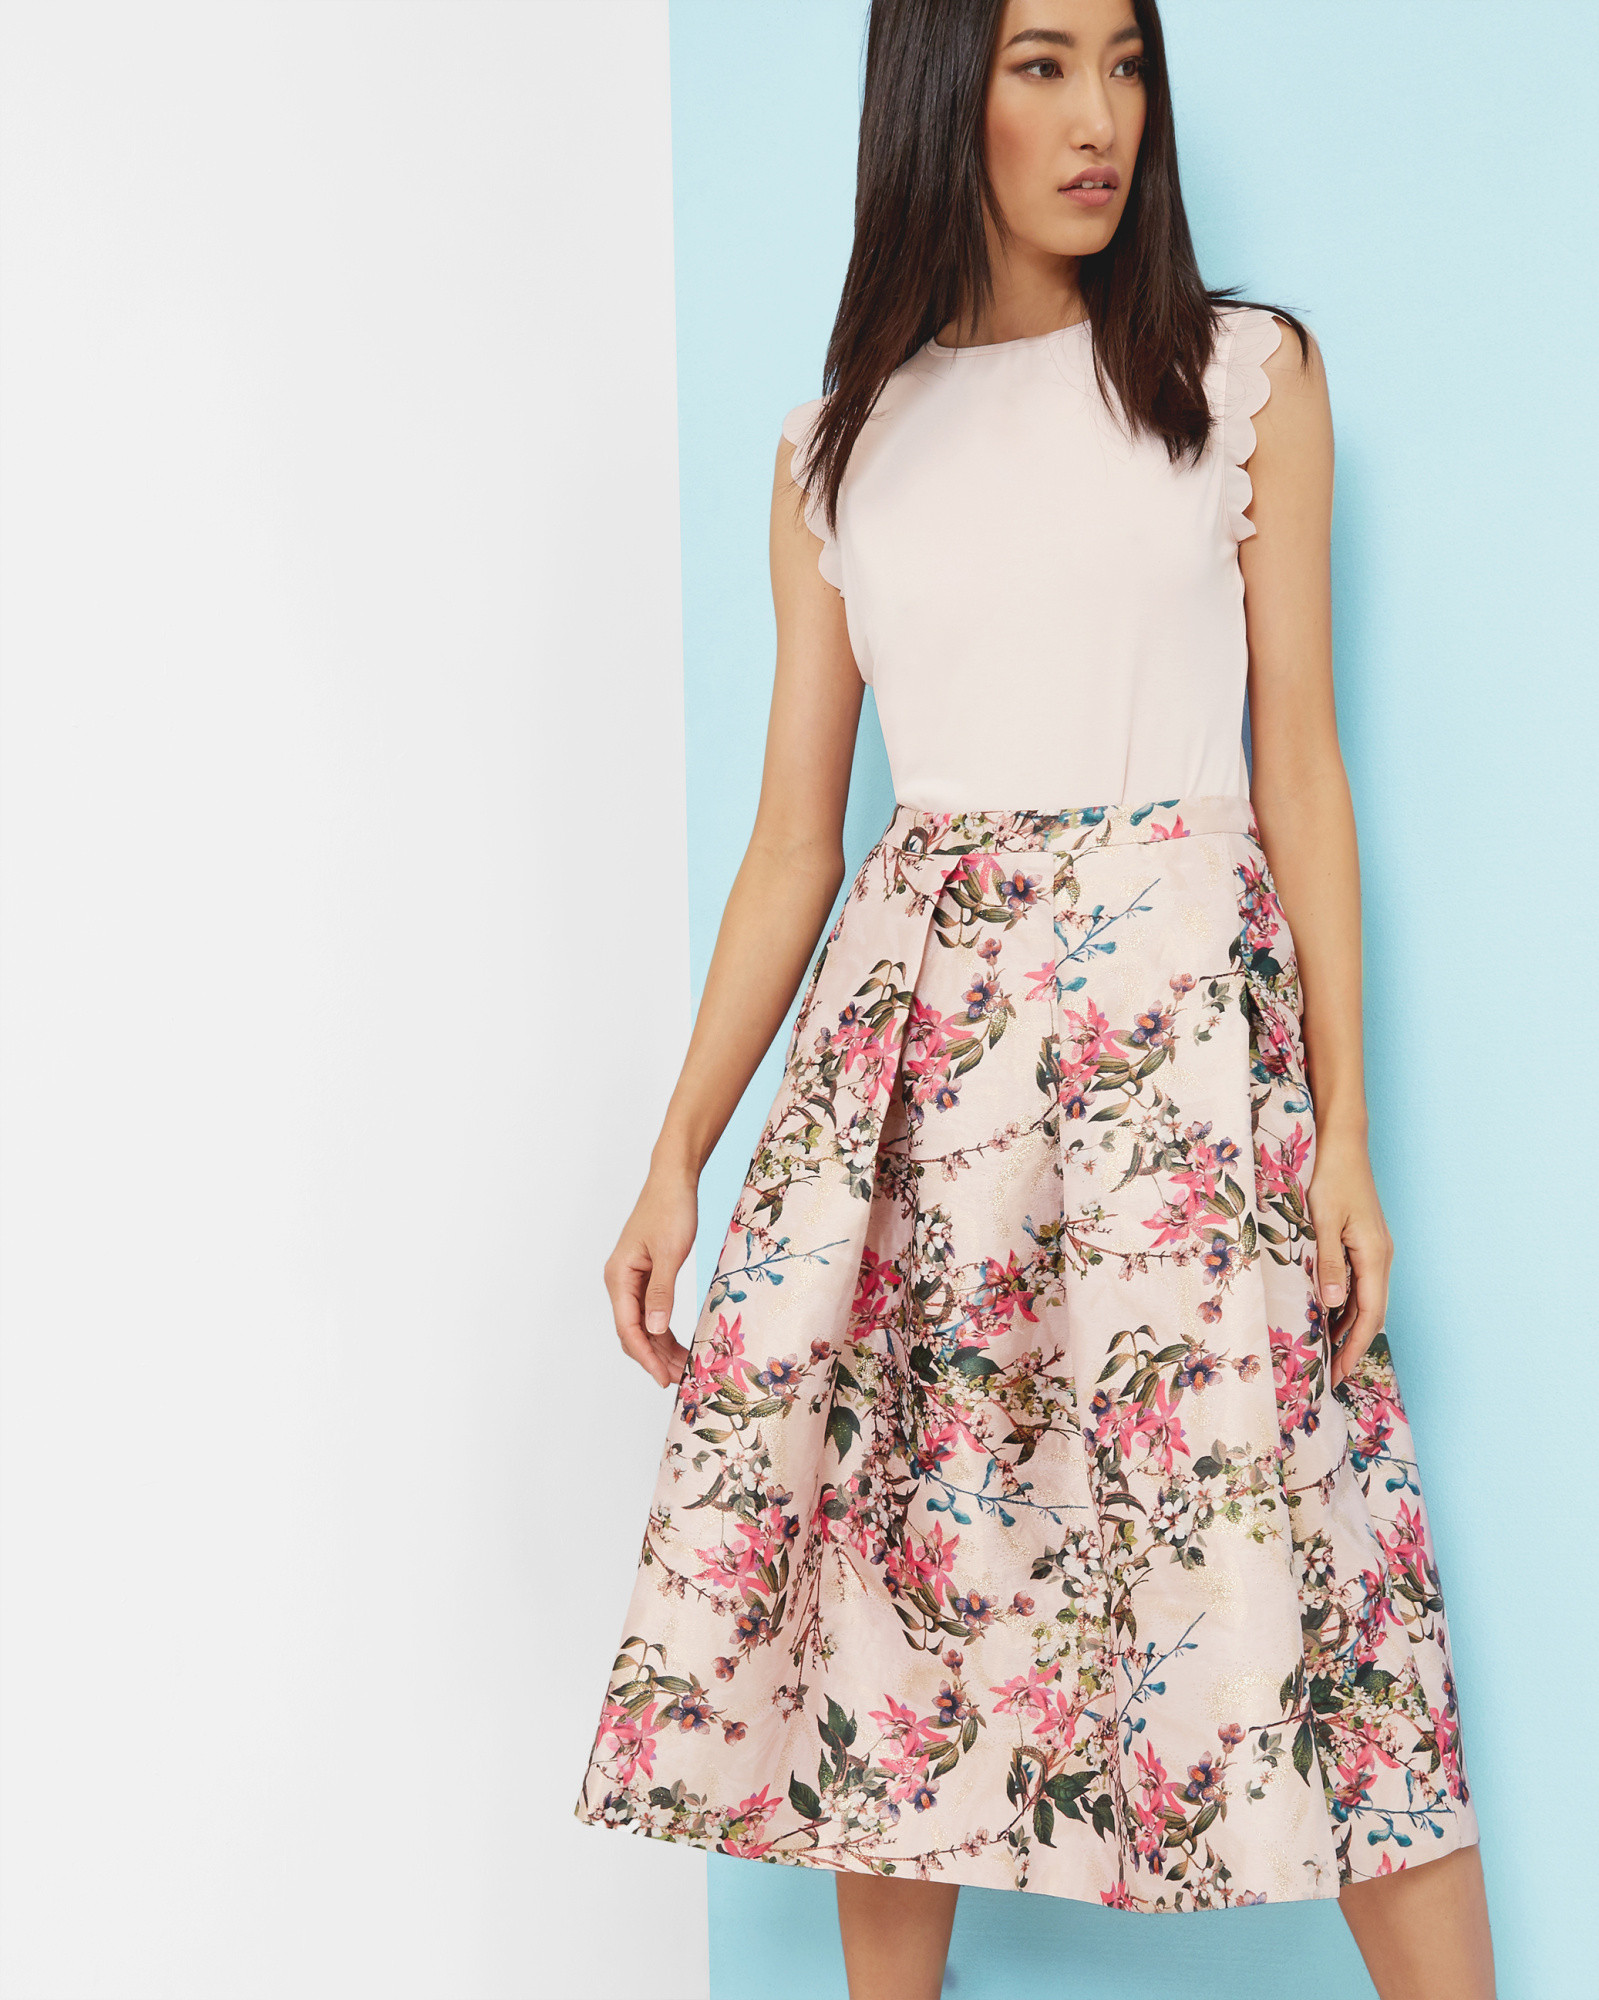 ce22853be7 SHOP SS17: Ted's Blossom Jacquard midi skirt is the perfect piece to wear  from winter to summer. Style it with a soft pink or neutral hue and  charming bow ...